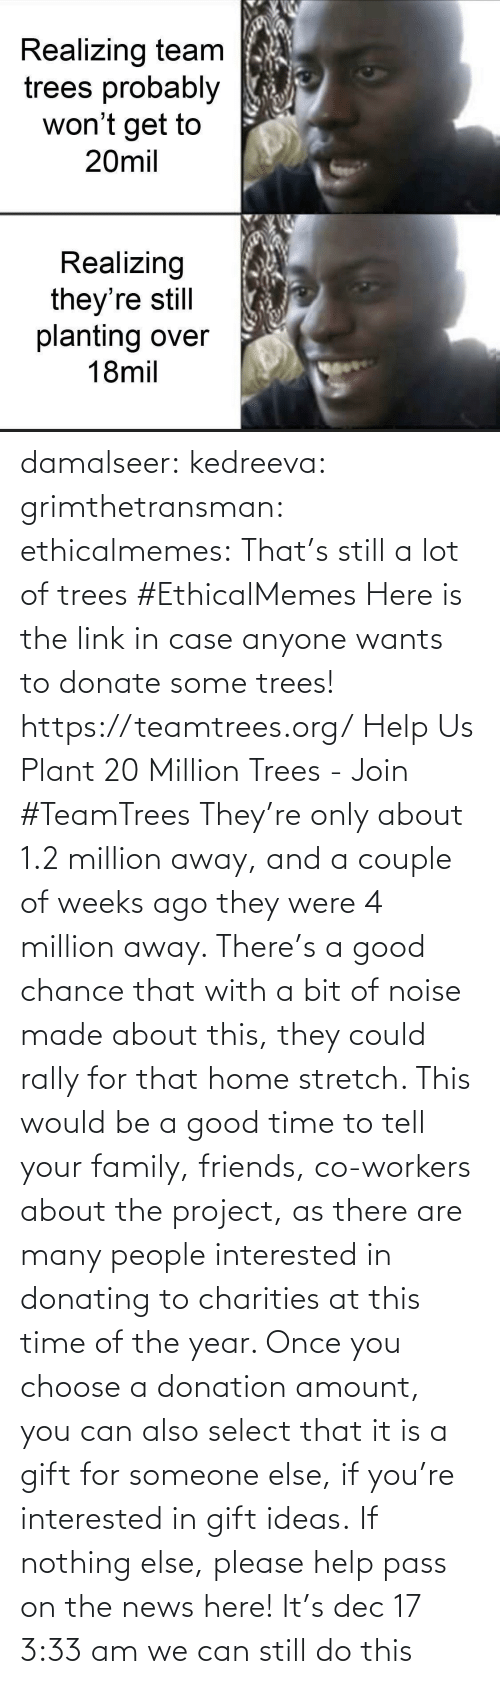 couple: Realizing team  trees probably  won't get to  20mil  Realizing  they're still  planting over  18mil damalseer:  kedreeva: grimthetransman:  ethicalmemes:  That's still a lot of trees #EthicalMemes   Here is the link in case anyone wants to donate some trees!  https://teamtrees.org/ Help Us Plant 20 Million Trees - Join #TeamTrees  They're only about 1.2 million away, and a couple of weeks ago they were 4 million away. There's a good chance that with a bit of noise made about this, they could rally for that home stretch. This would be a good time to tell your family, friends, co-workers about the project, as there are many people interested in donating to charities at this time of the year. Once you choose a donation amount, you can also select that it is a gift for someone else, if you're interested in gift ideas. If nothing else, please help pass on the news here!    It's dec 17 3:33 am we can still do this